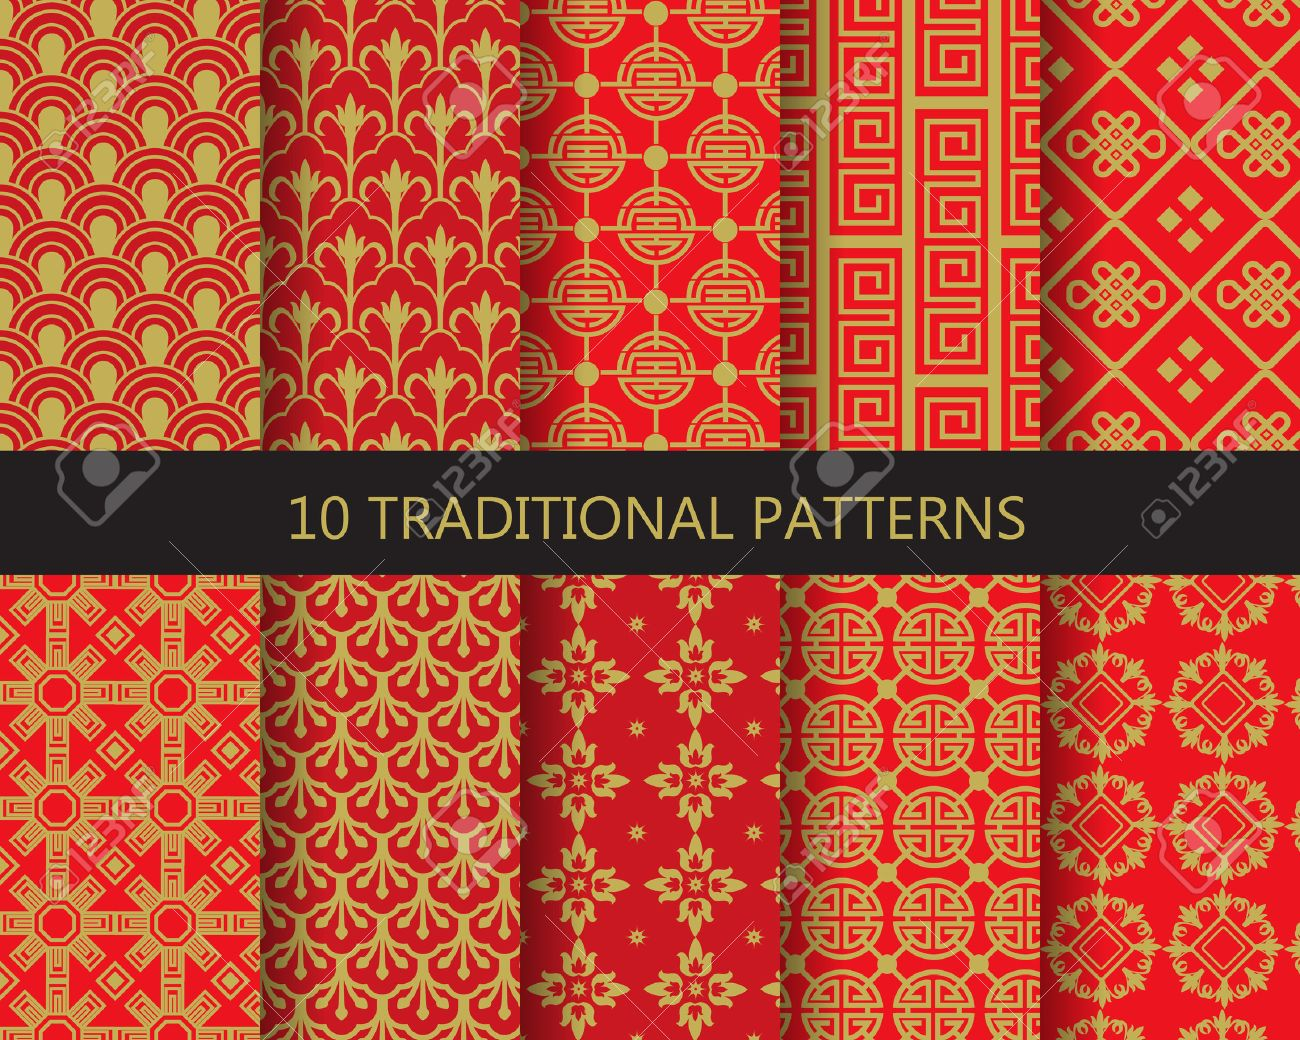 10 Different Traditional Chinese Patterns Endless Texture Can Be Used For Wallpaper Pattern Fills